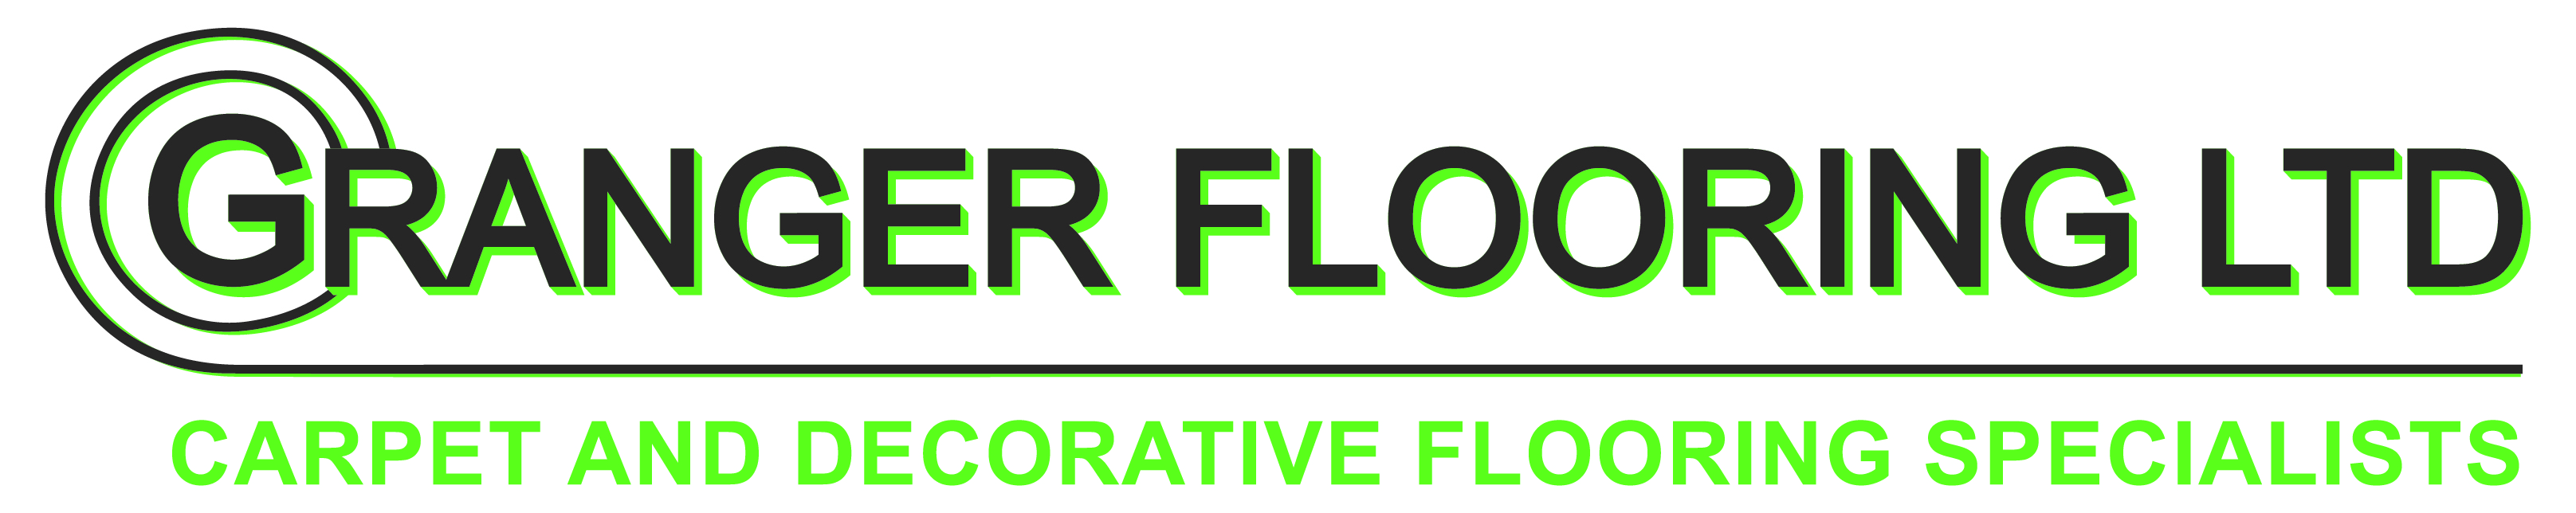 Granger Flooring Ltd